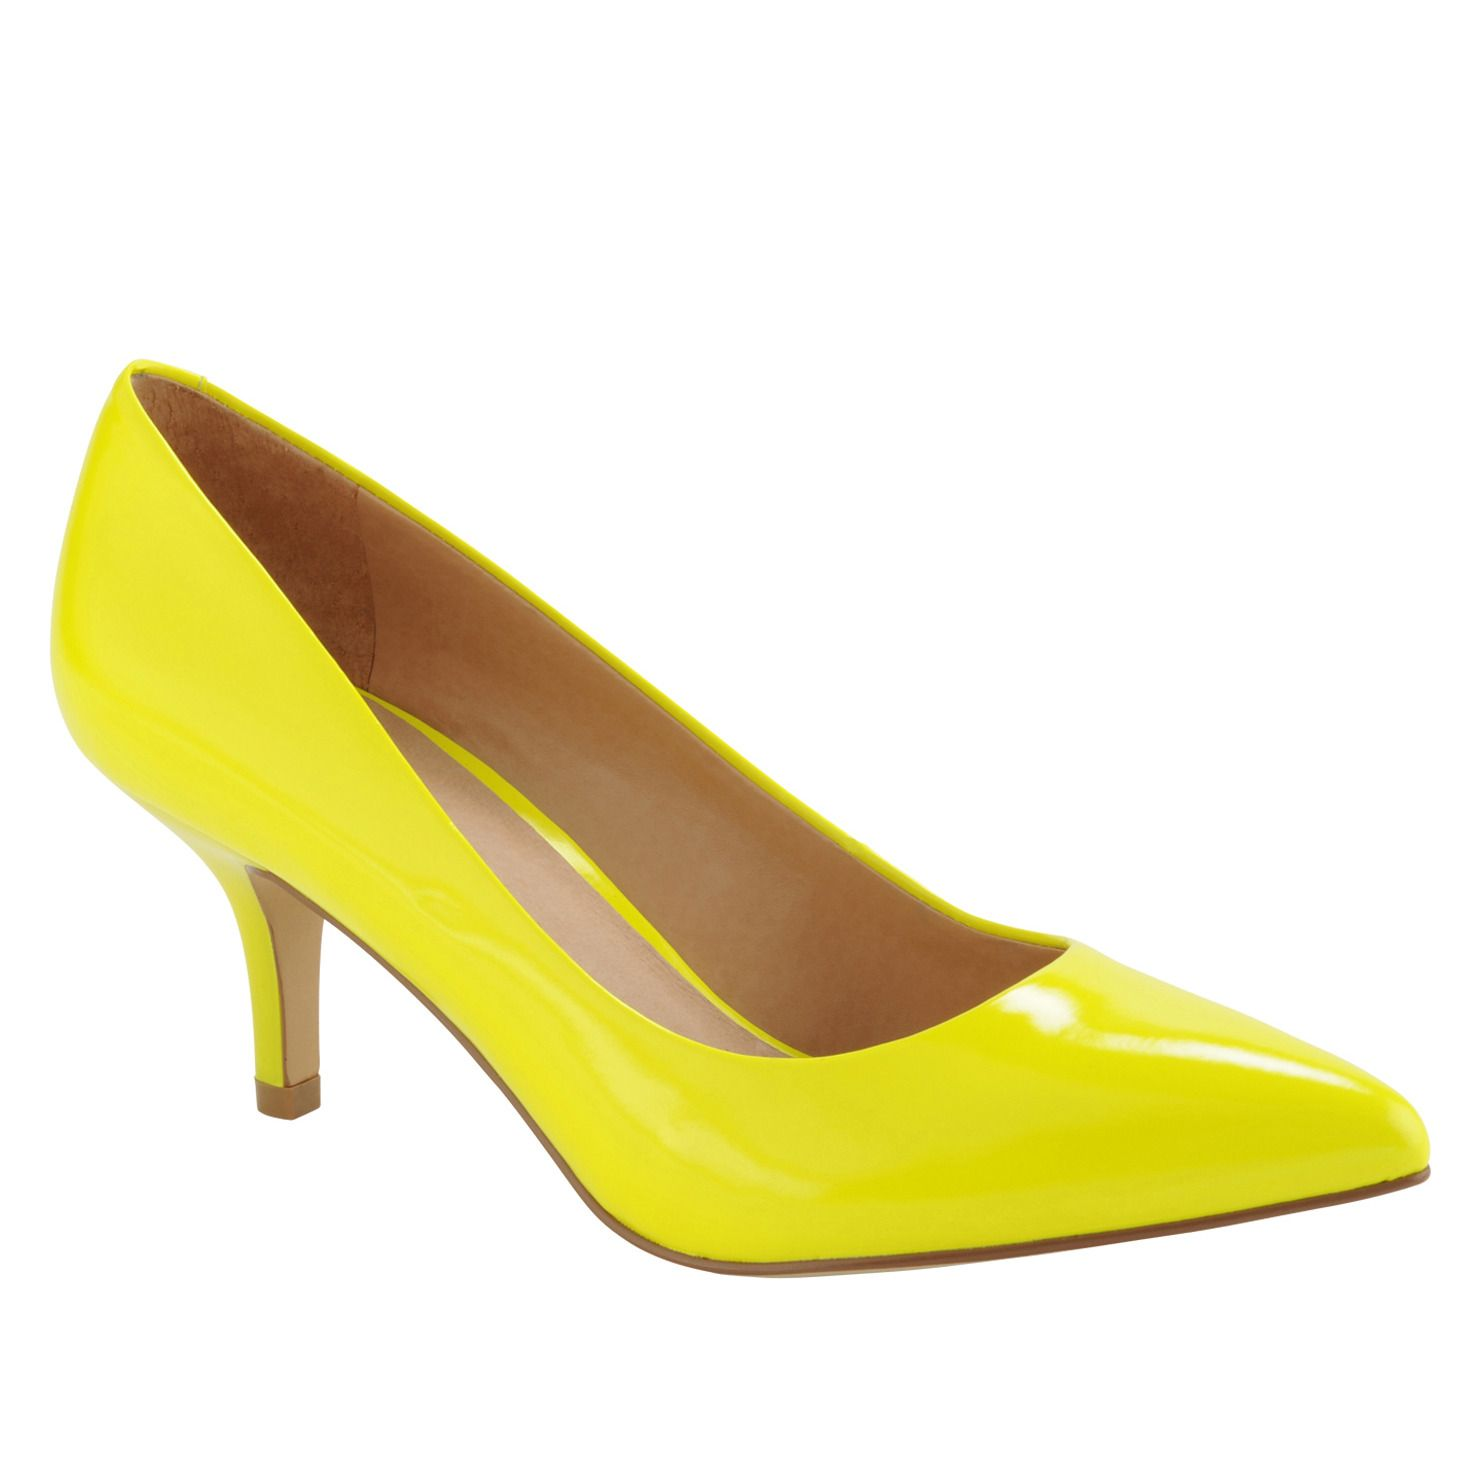 DELCAMP - women's low-mid heels shoes for sale at ALDO Shoes ...